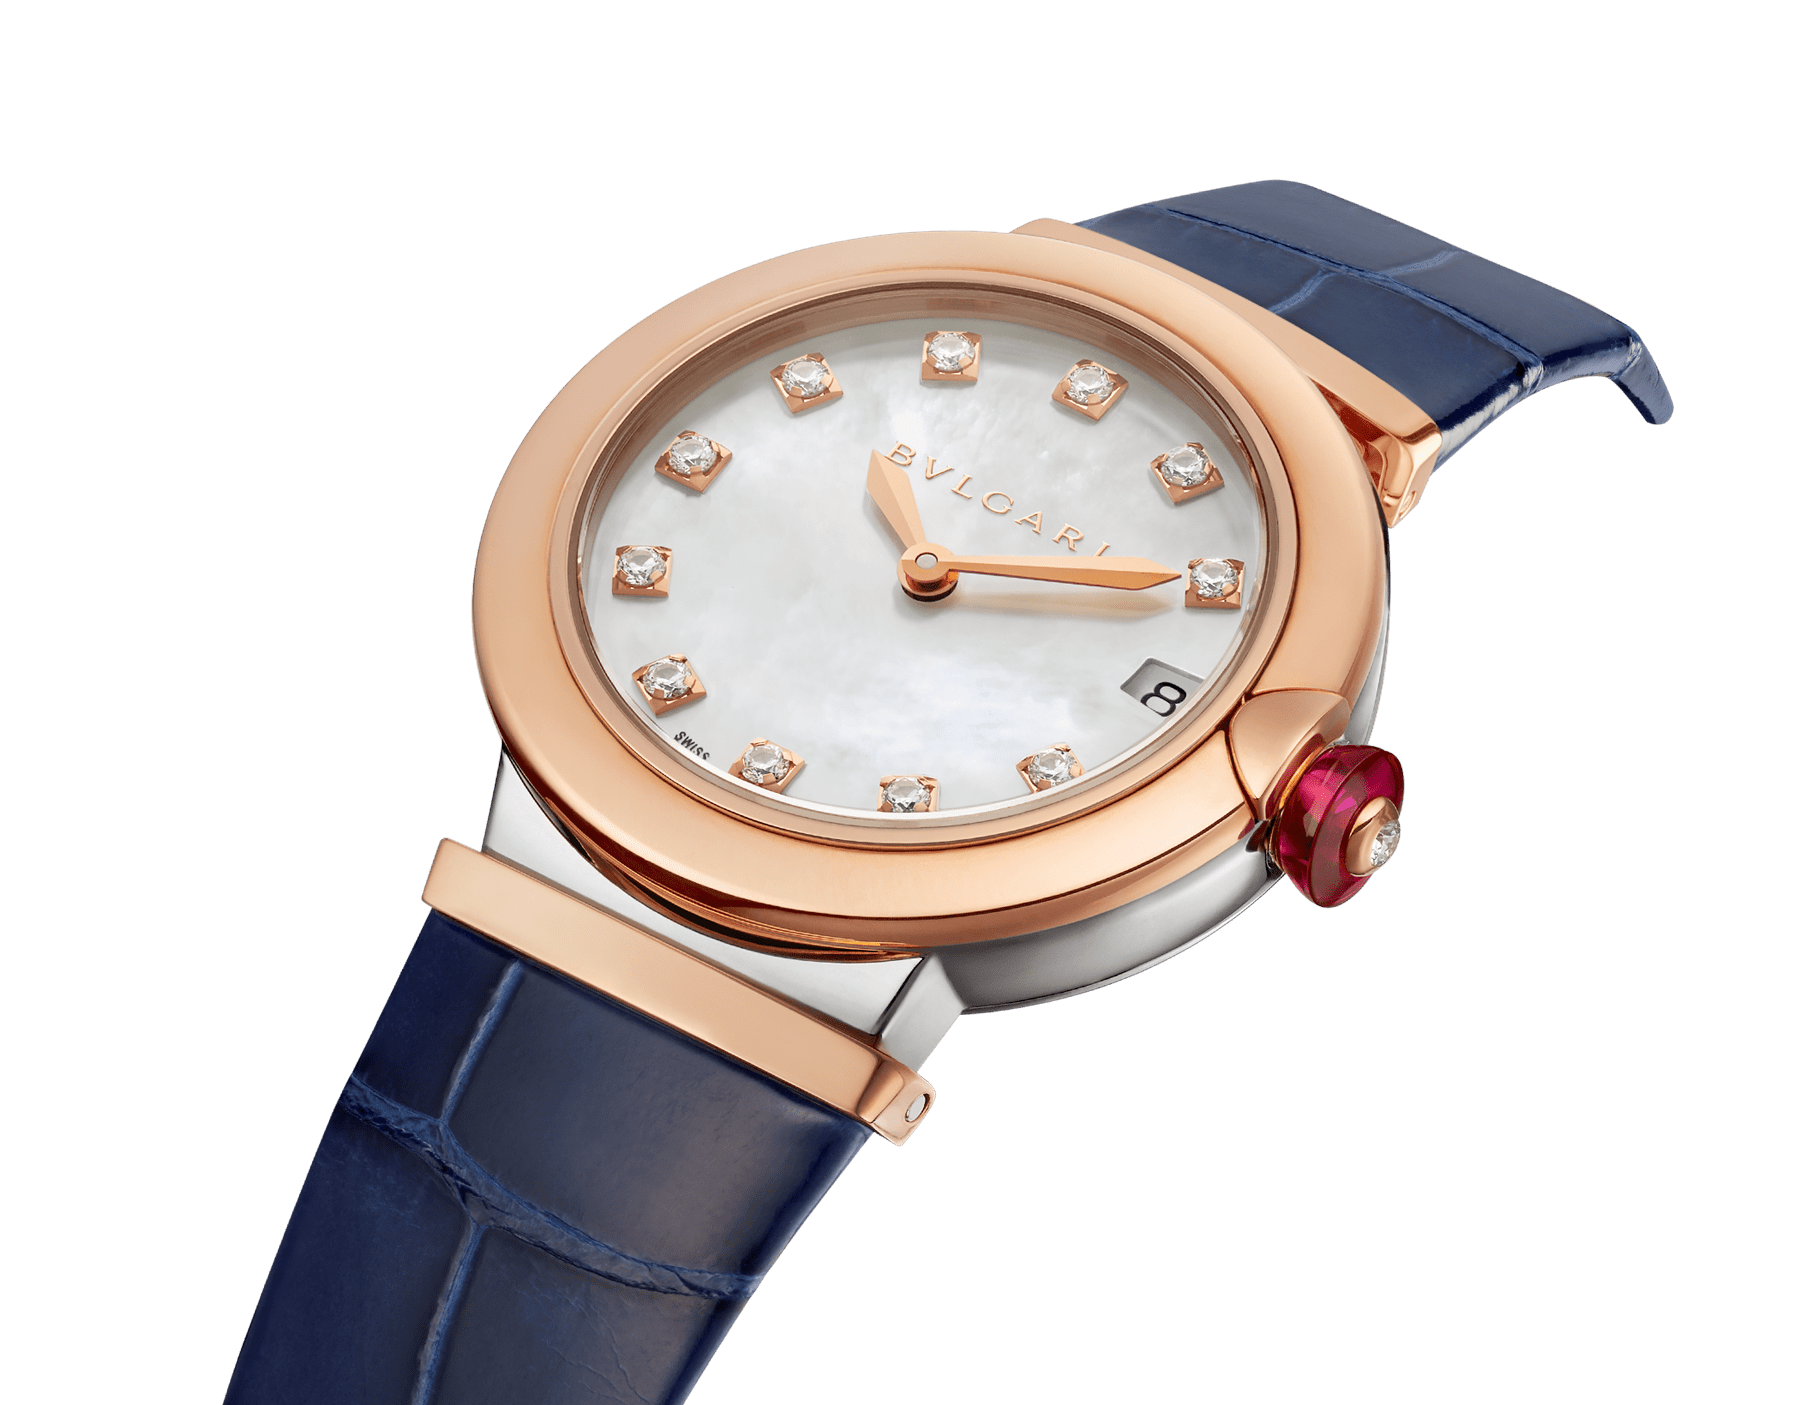 LVCEA watch with 18 kt rose gold and stainless steel case, white mother-of-pearl dial set with diamond indexes, date aperture and blue alligator bracelet. 102638 image 2